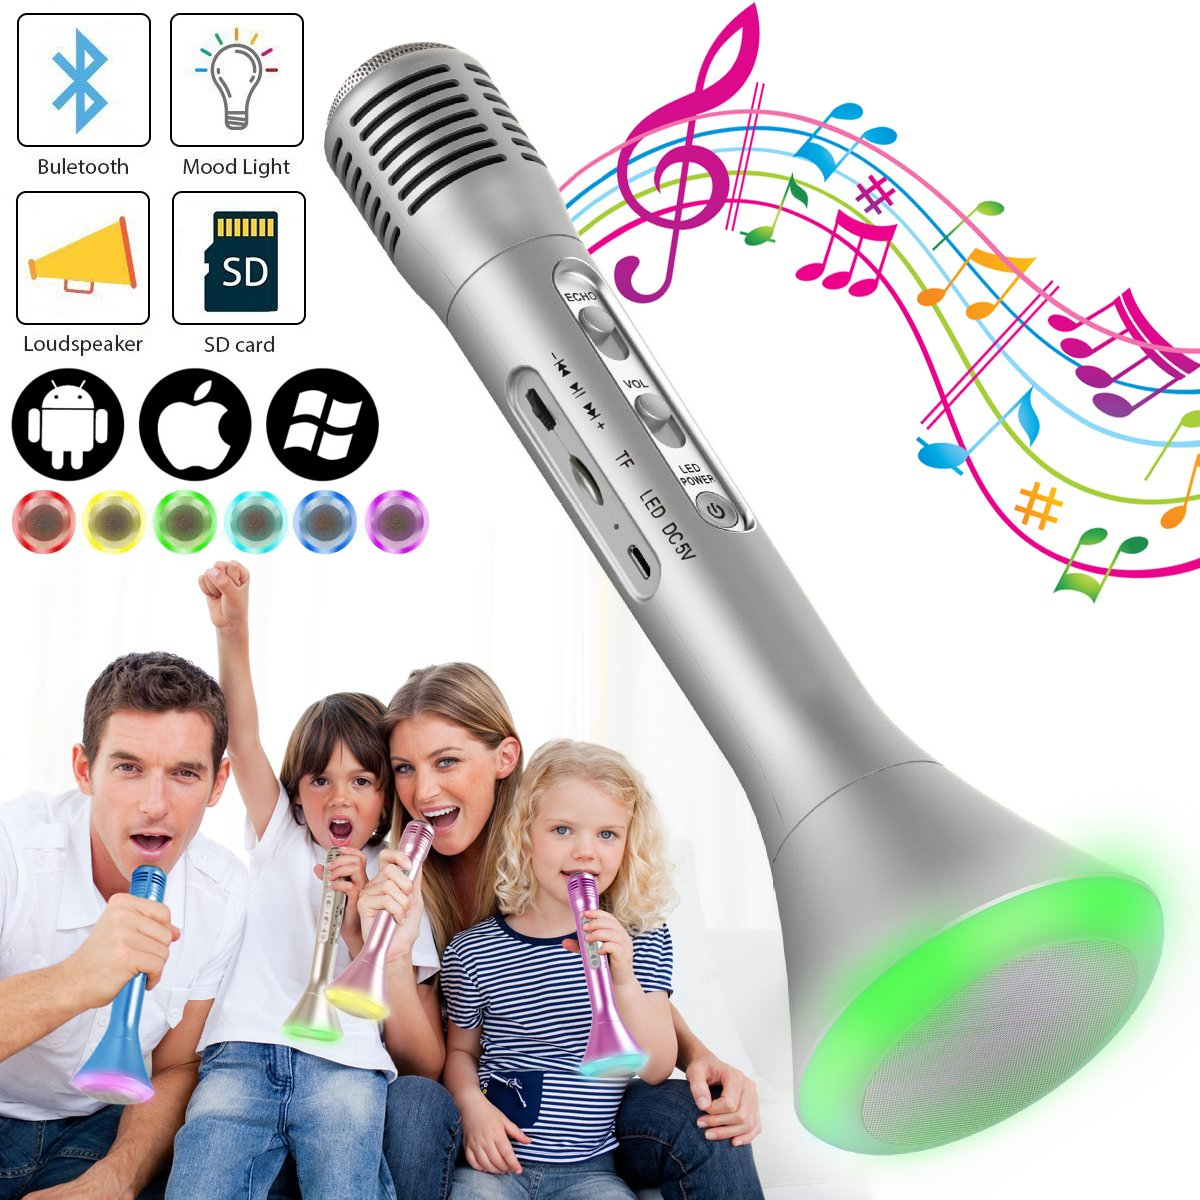 Wireless Kids Karaoke Microphone with Bluetooth Speaker, Portable Handheld Karaoke Player for Home Party KTV Music Singing Playing, Support iPhone Android IOS Smartphone PC iPad, Pink Poppin Kicks